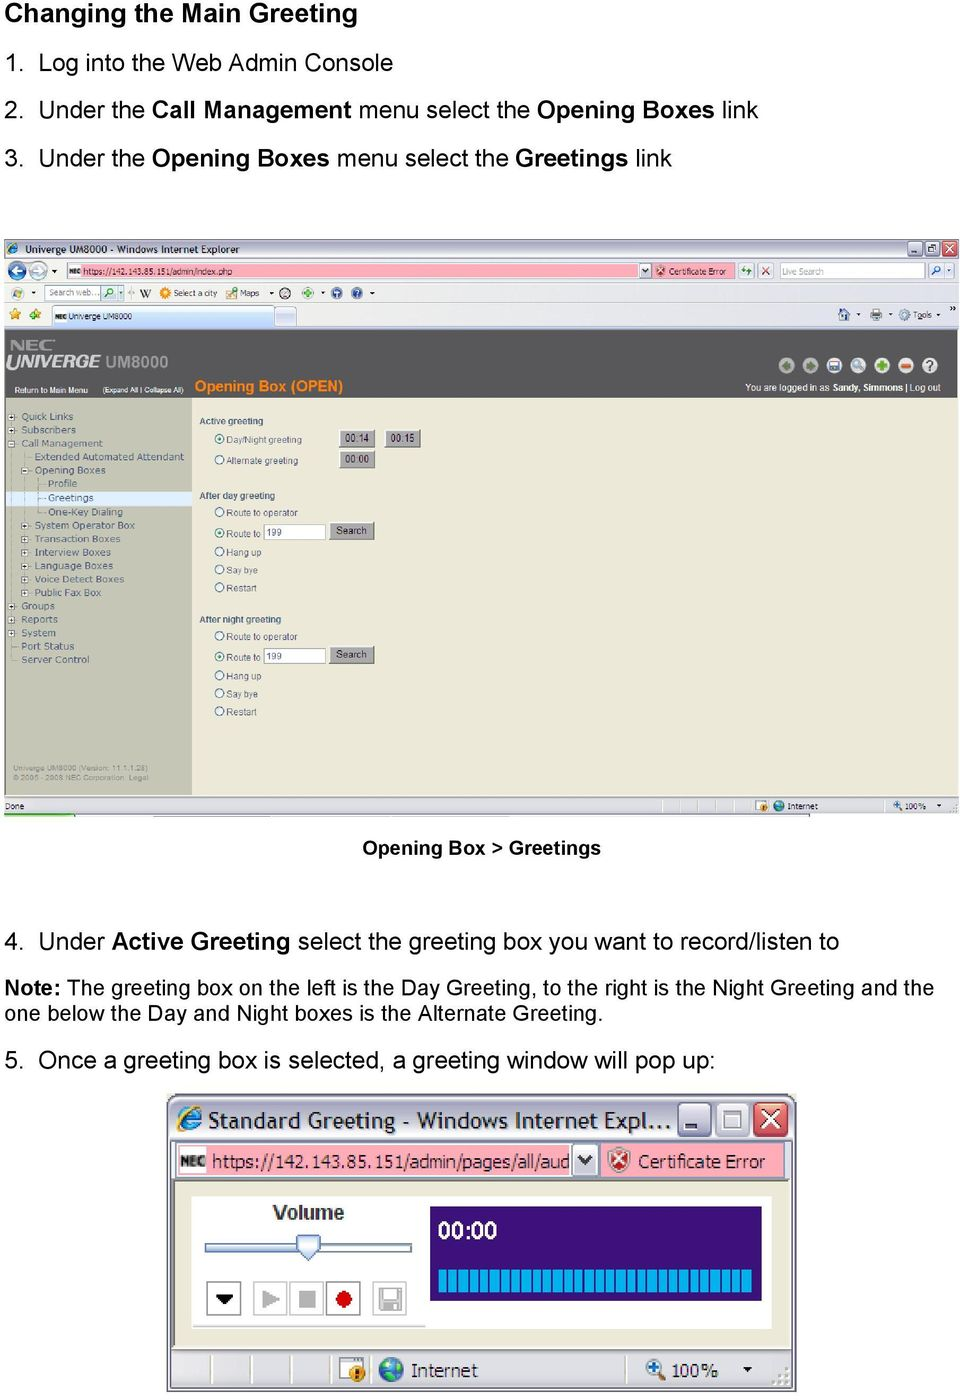 Under Active Greeting select the greeting box you want to record/listen to Note: The greeting box on the left is the Day